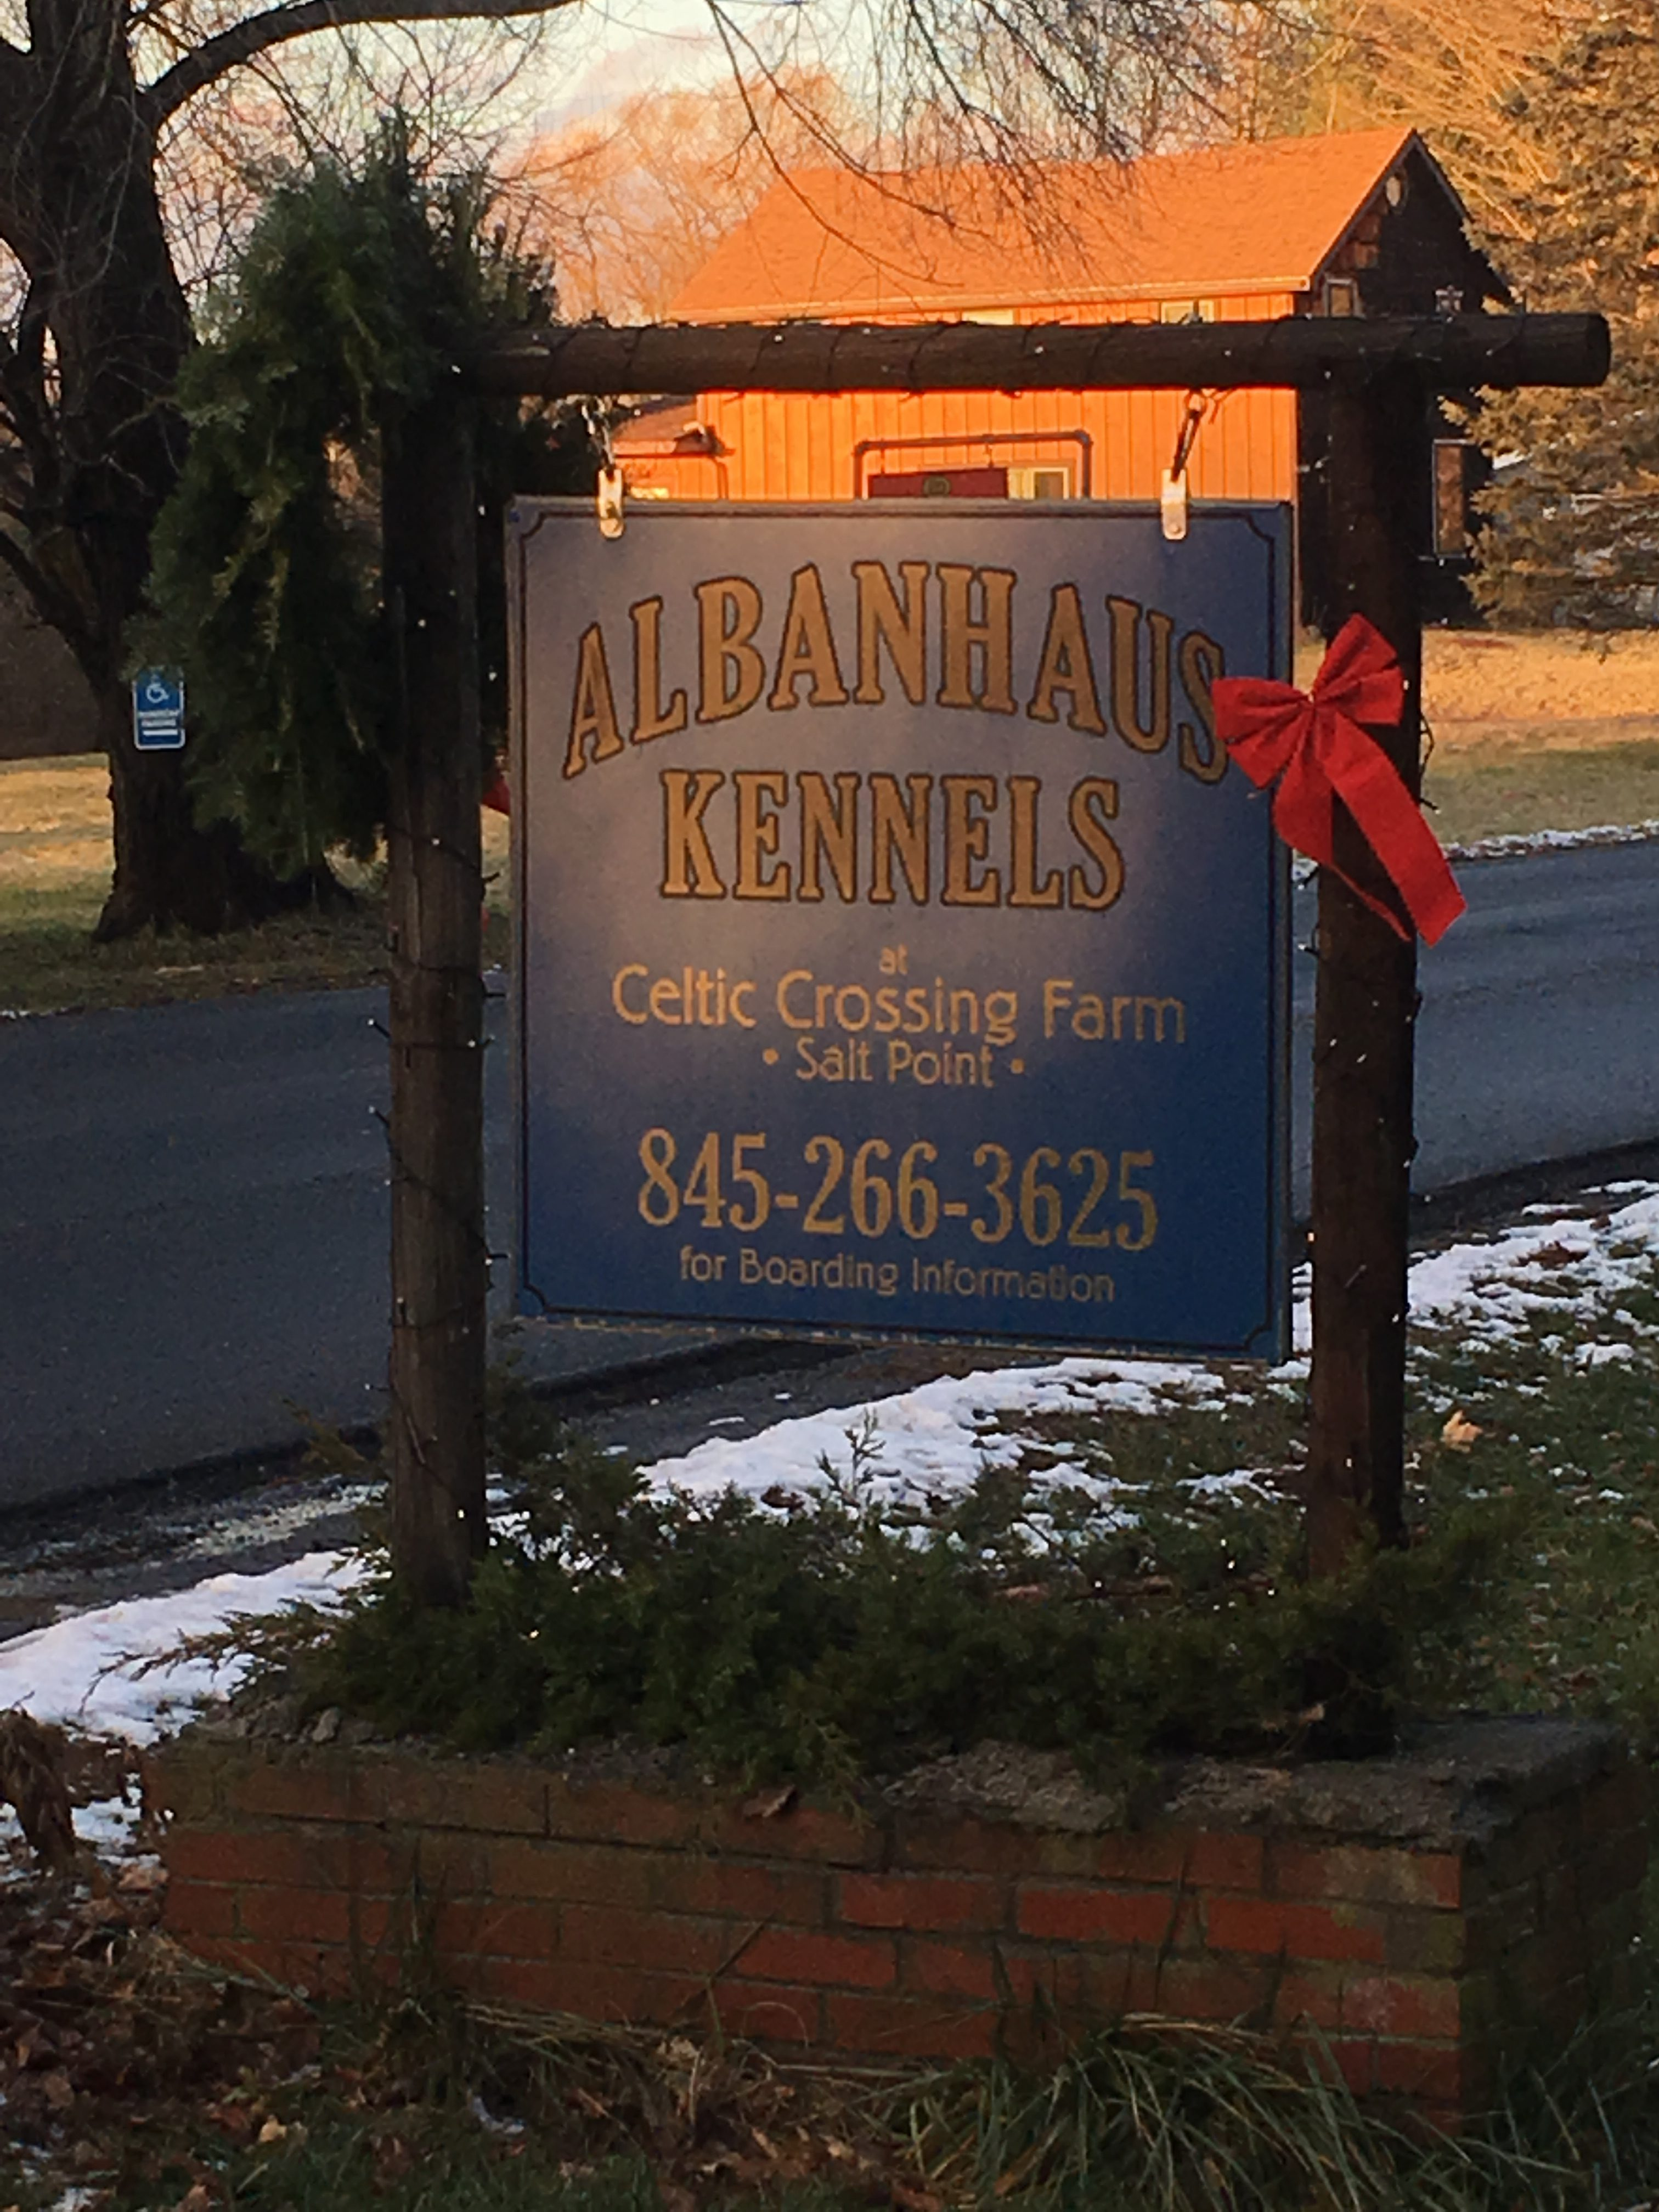 photo of Albanhaus Kennels sign with phone 845-266-3625